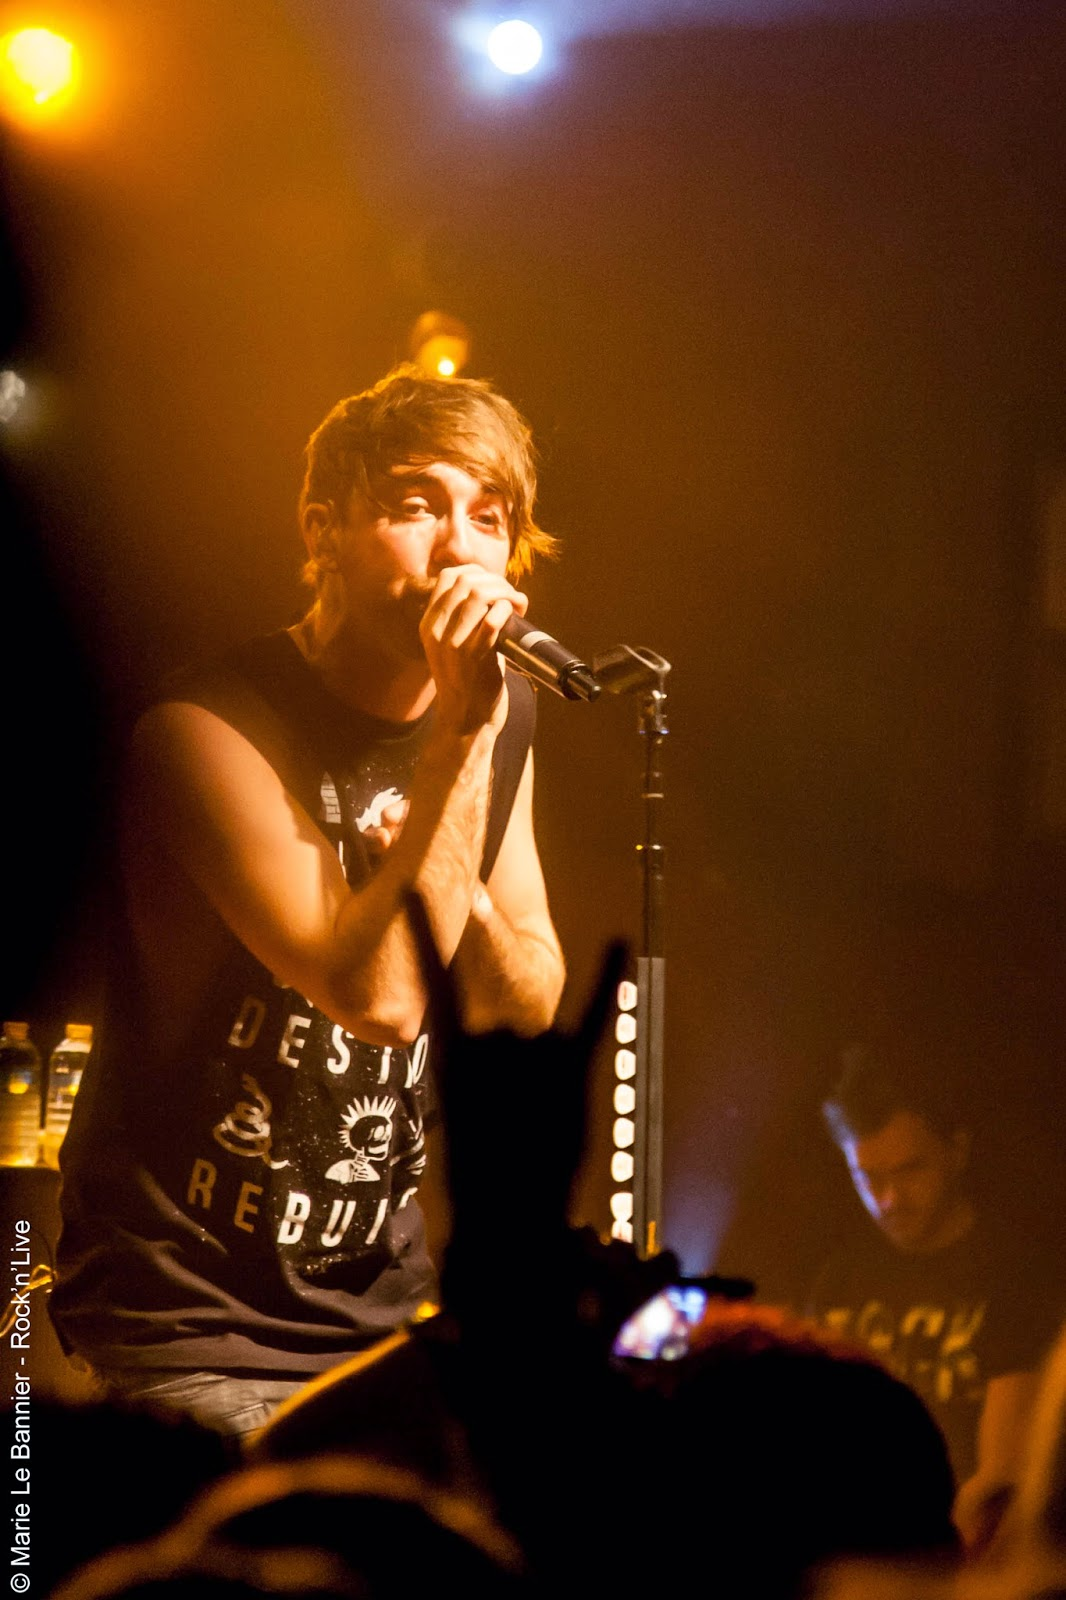 All Time Low Paris Cabaret Sauvage Concert Live Report 2014 Rock'n'Live Marie Le Bannier Alex Gaskarth Jack Barakat Rian Dawson Zack Merrick Nothing Personal Dirty Work Don't Panic Dear Maria, Count Me In Weightless Somewhere in Neverland